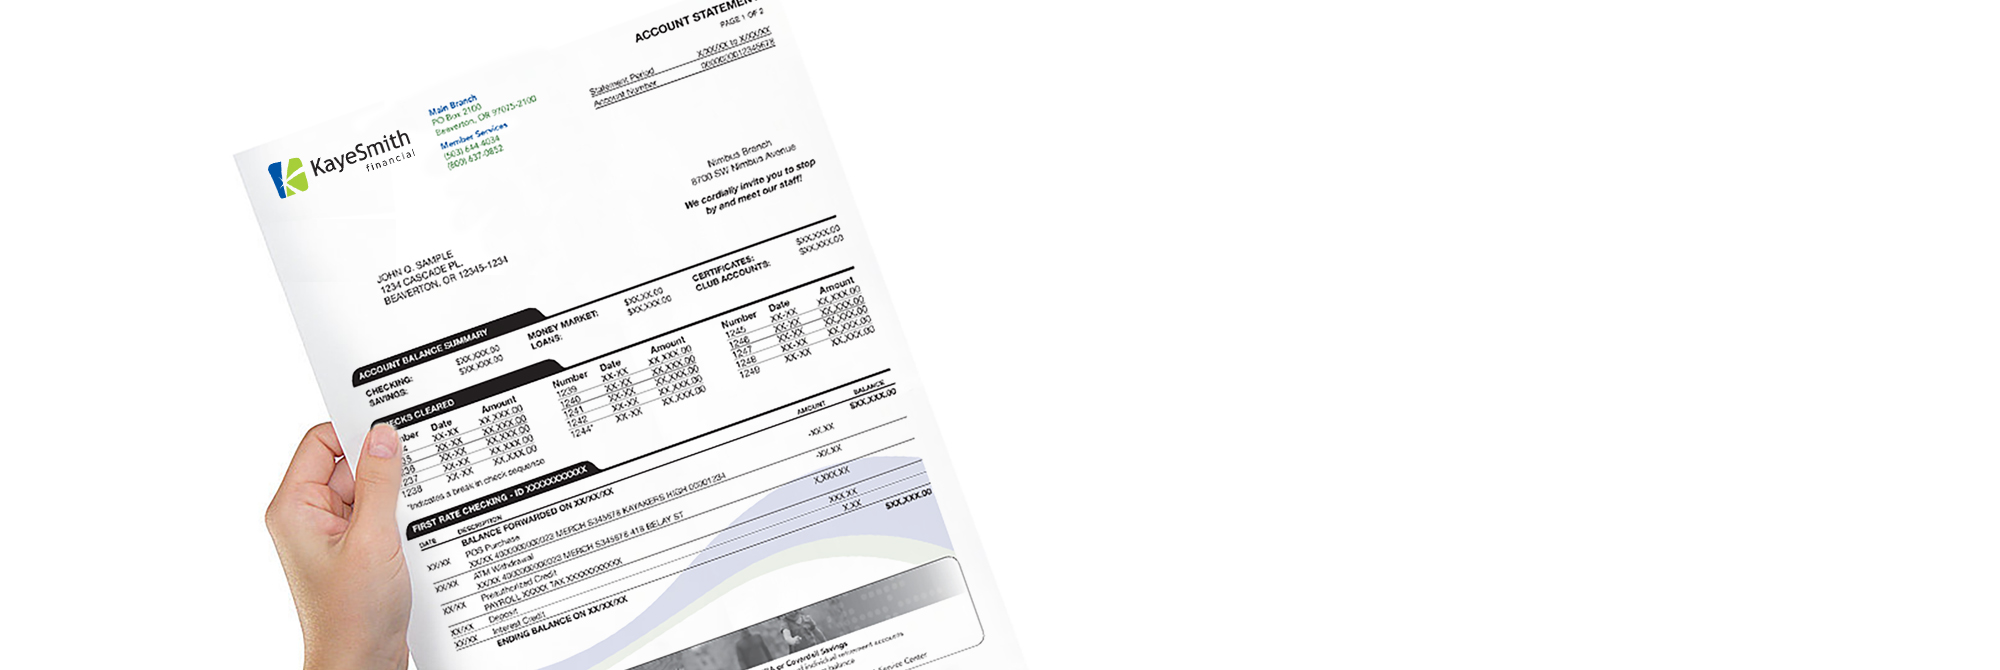 Kaye-Smith Statement Processing and Billing Services Document